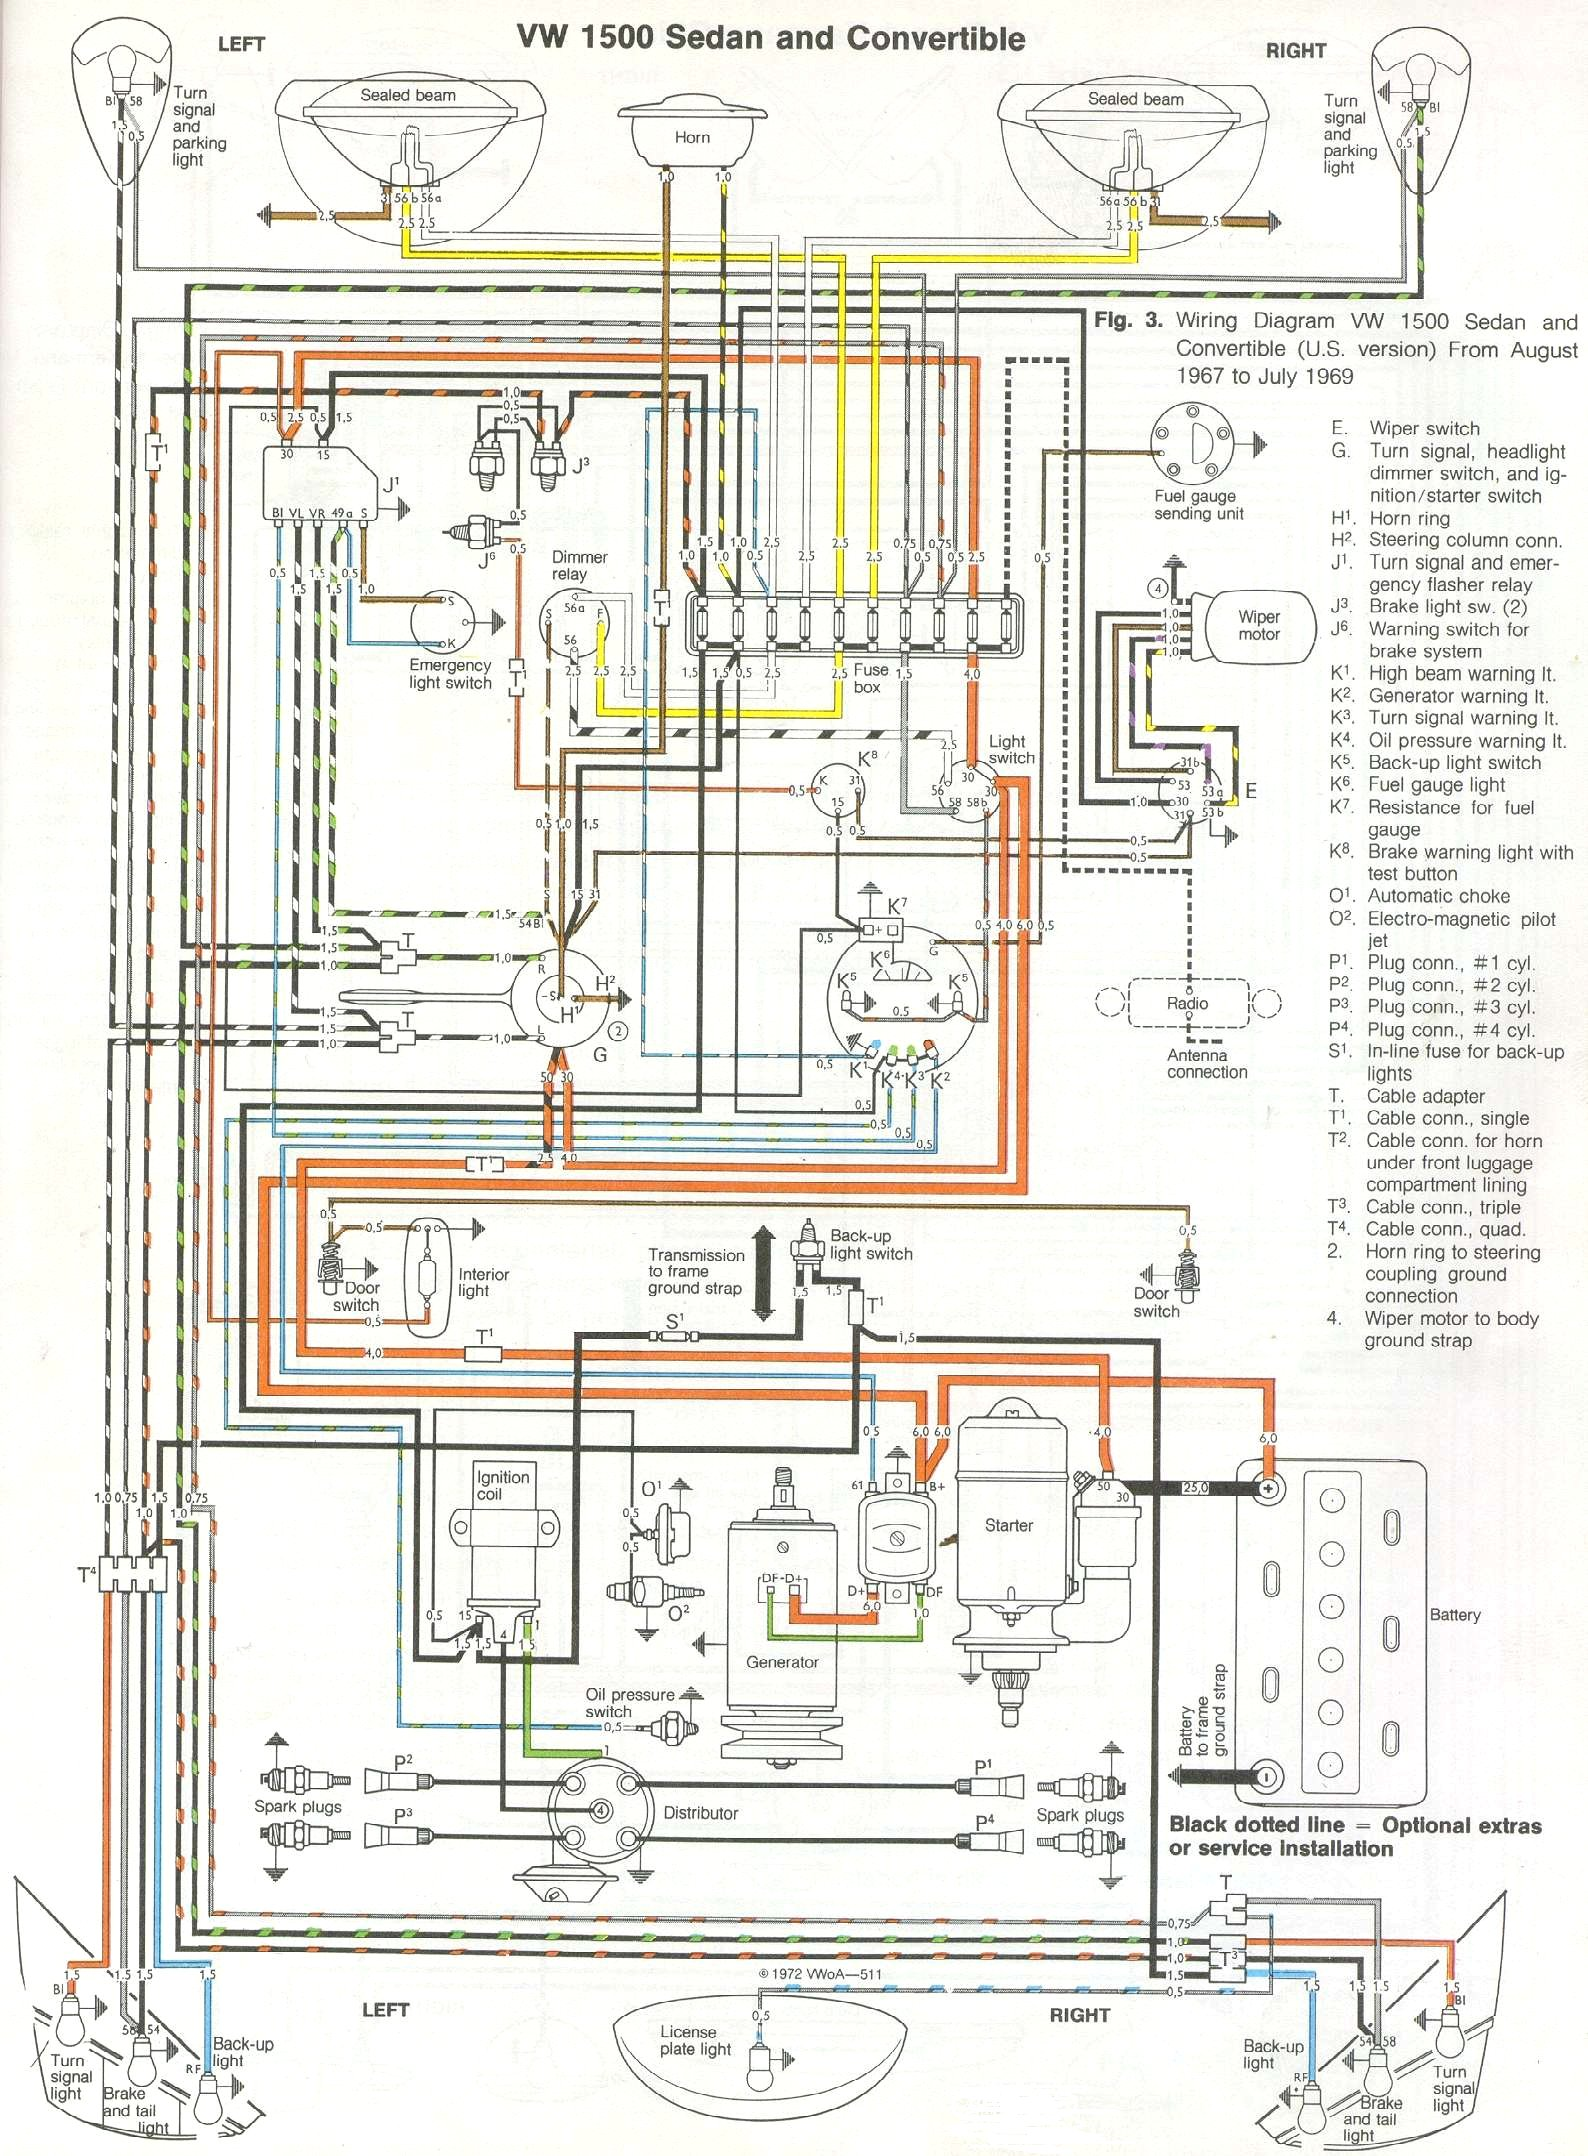 1969 71 beetle wiring diagram thegoldenbug com rh thegoldenbug com vw wiring diagrams online vw wiring diagrams free downloads